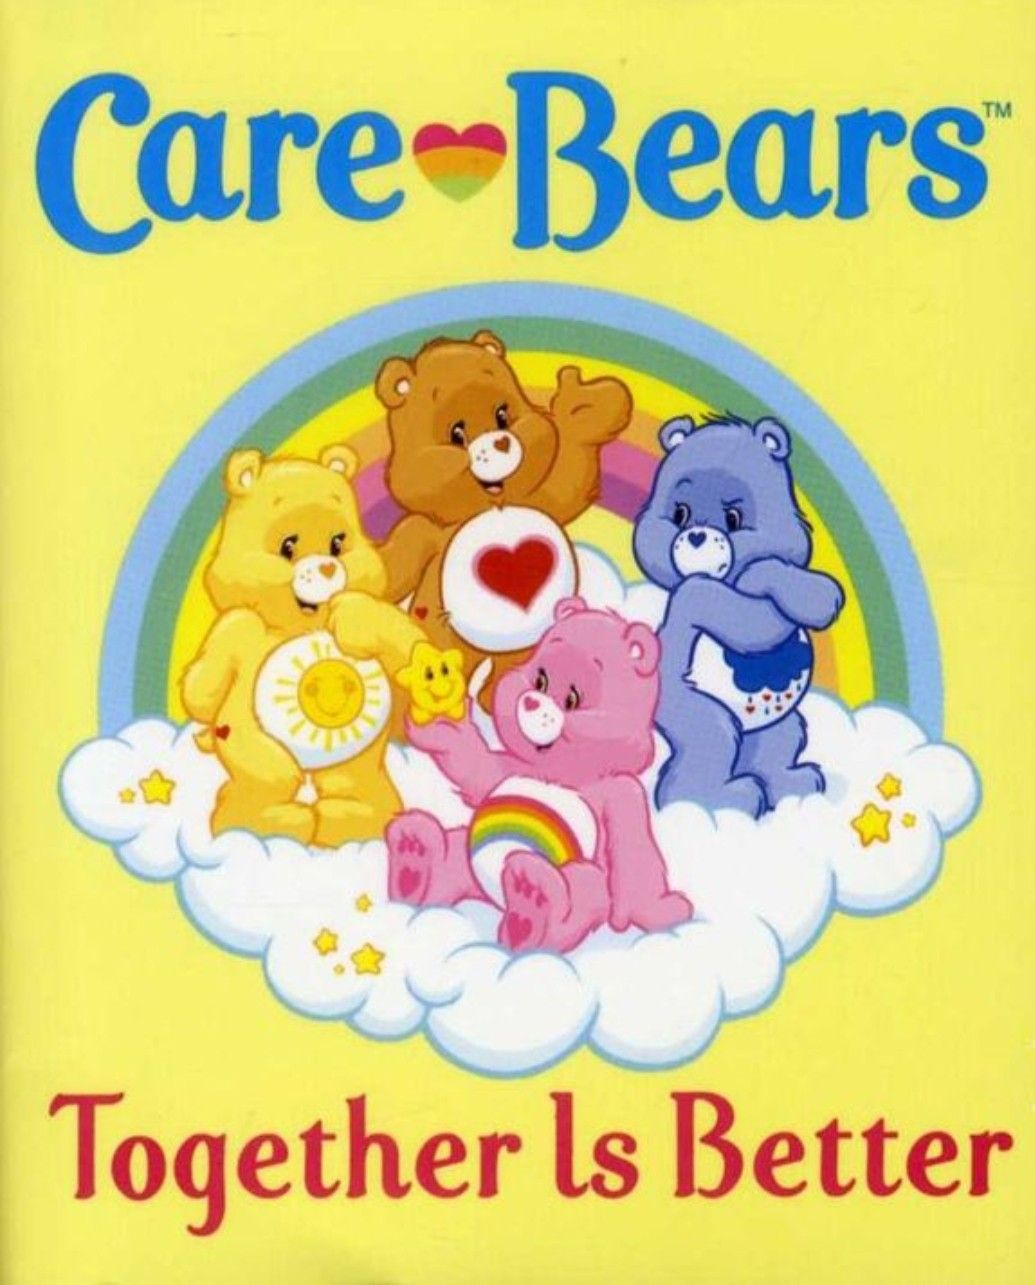 Care Bears Friends Friendship Together Is Better